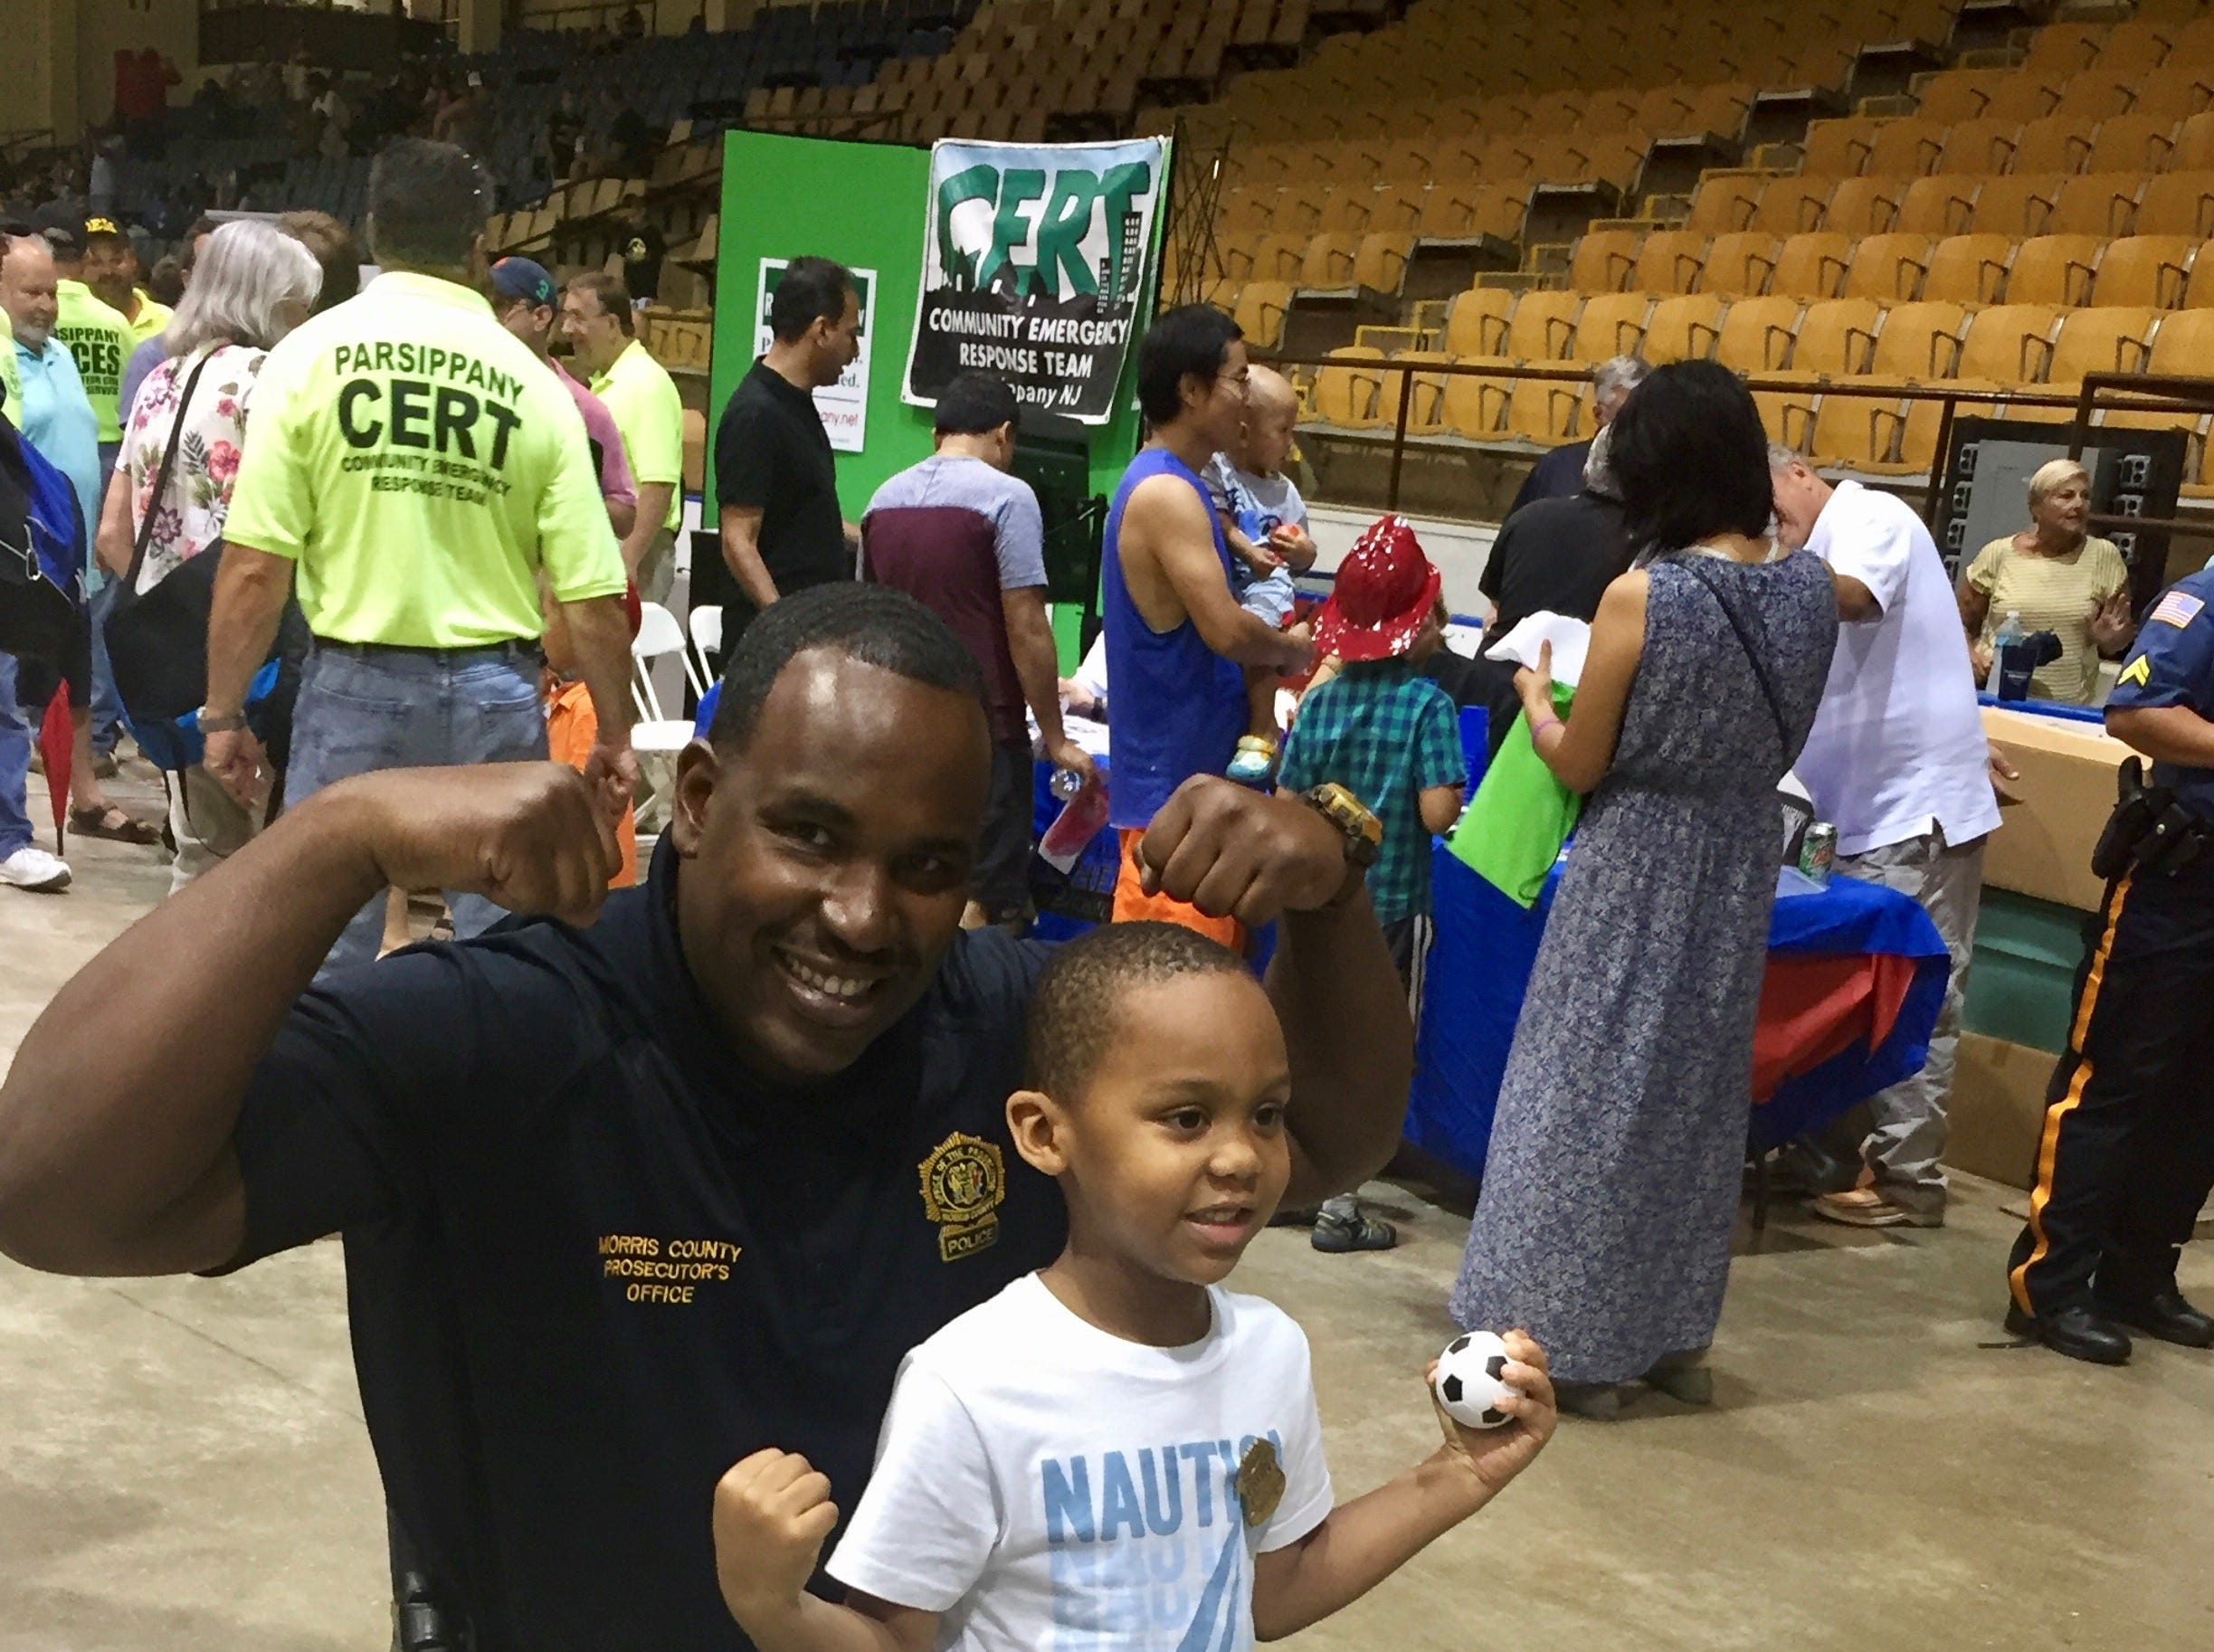 Det. Sup. Patrick LaGuerre with a young fan at the National Night Out event at Mennen Arena on Tuesday, August 7, 2018.